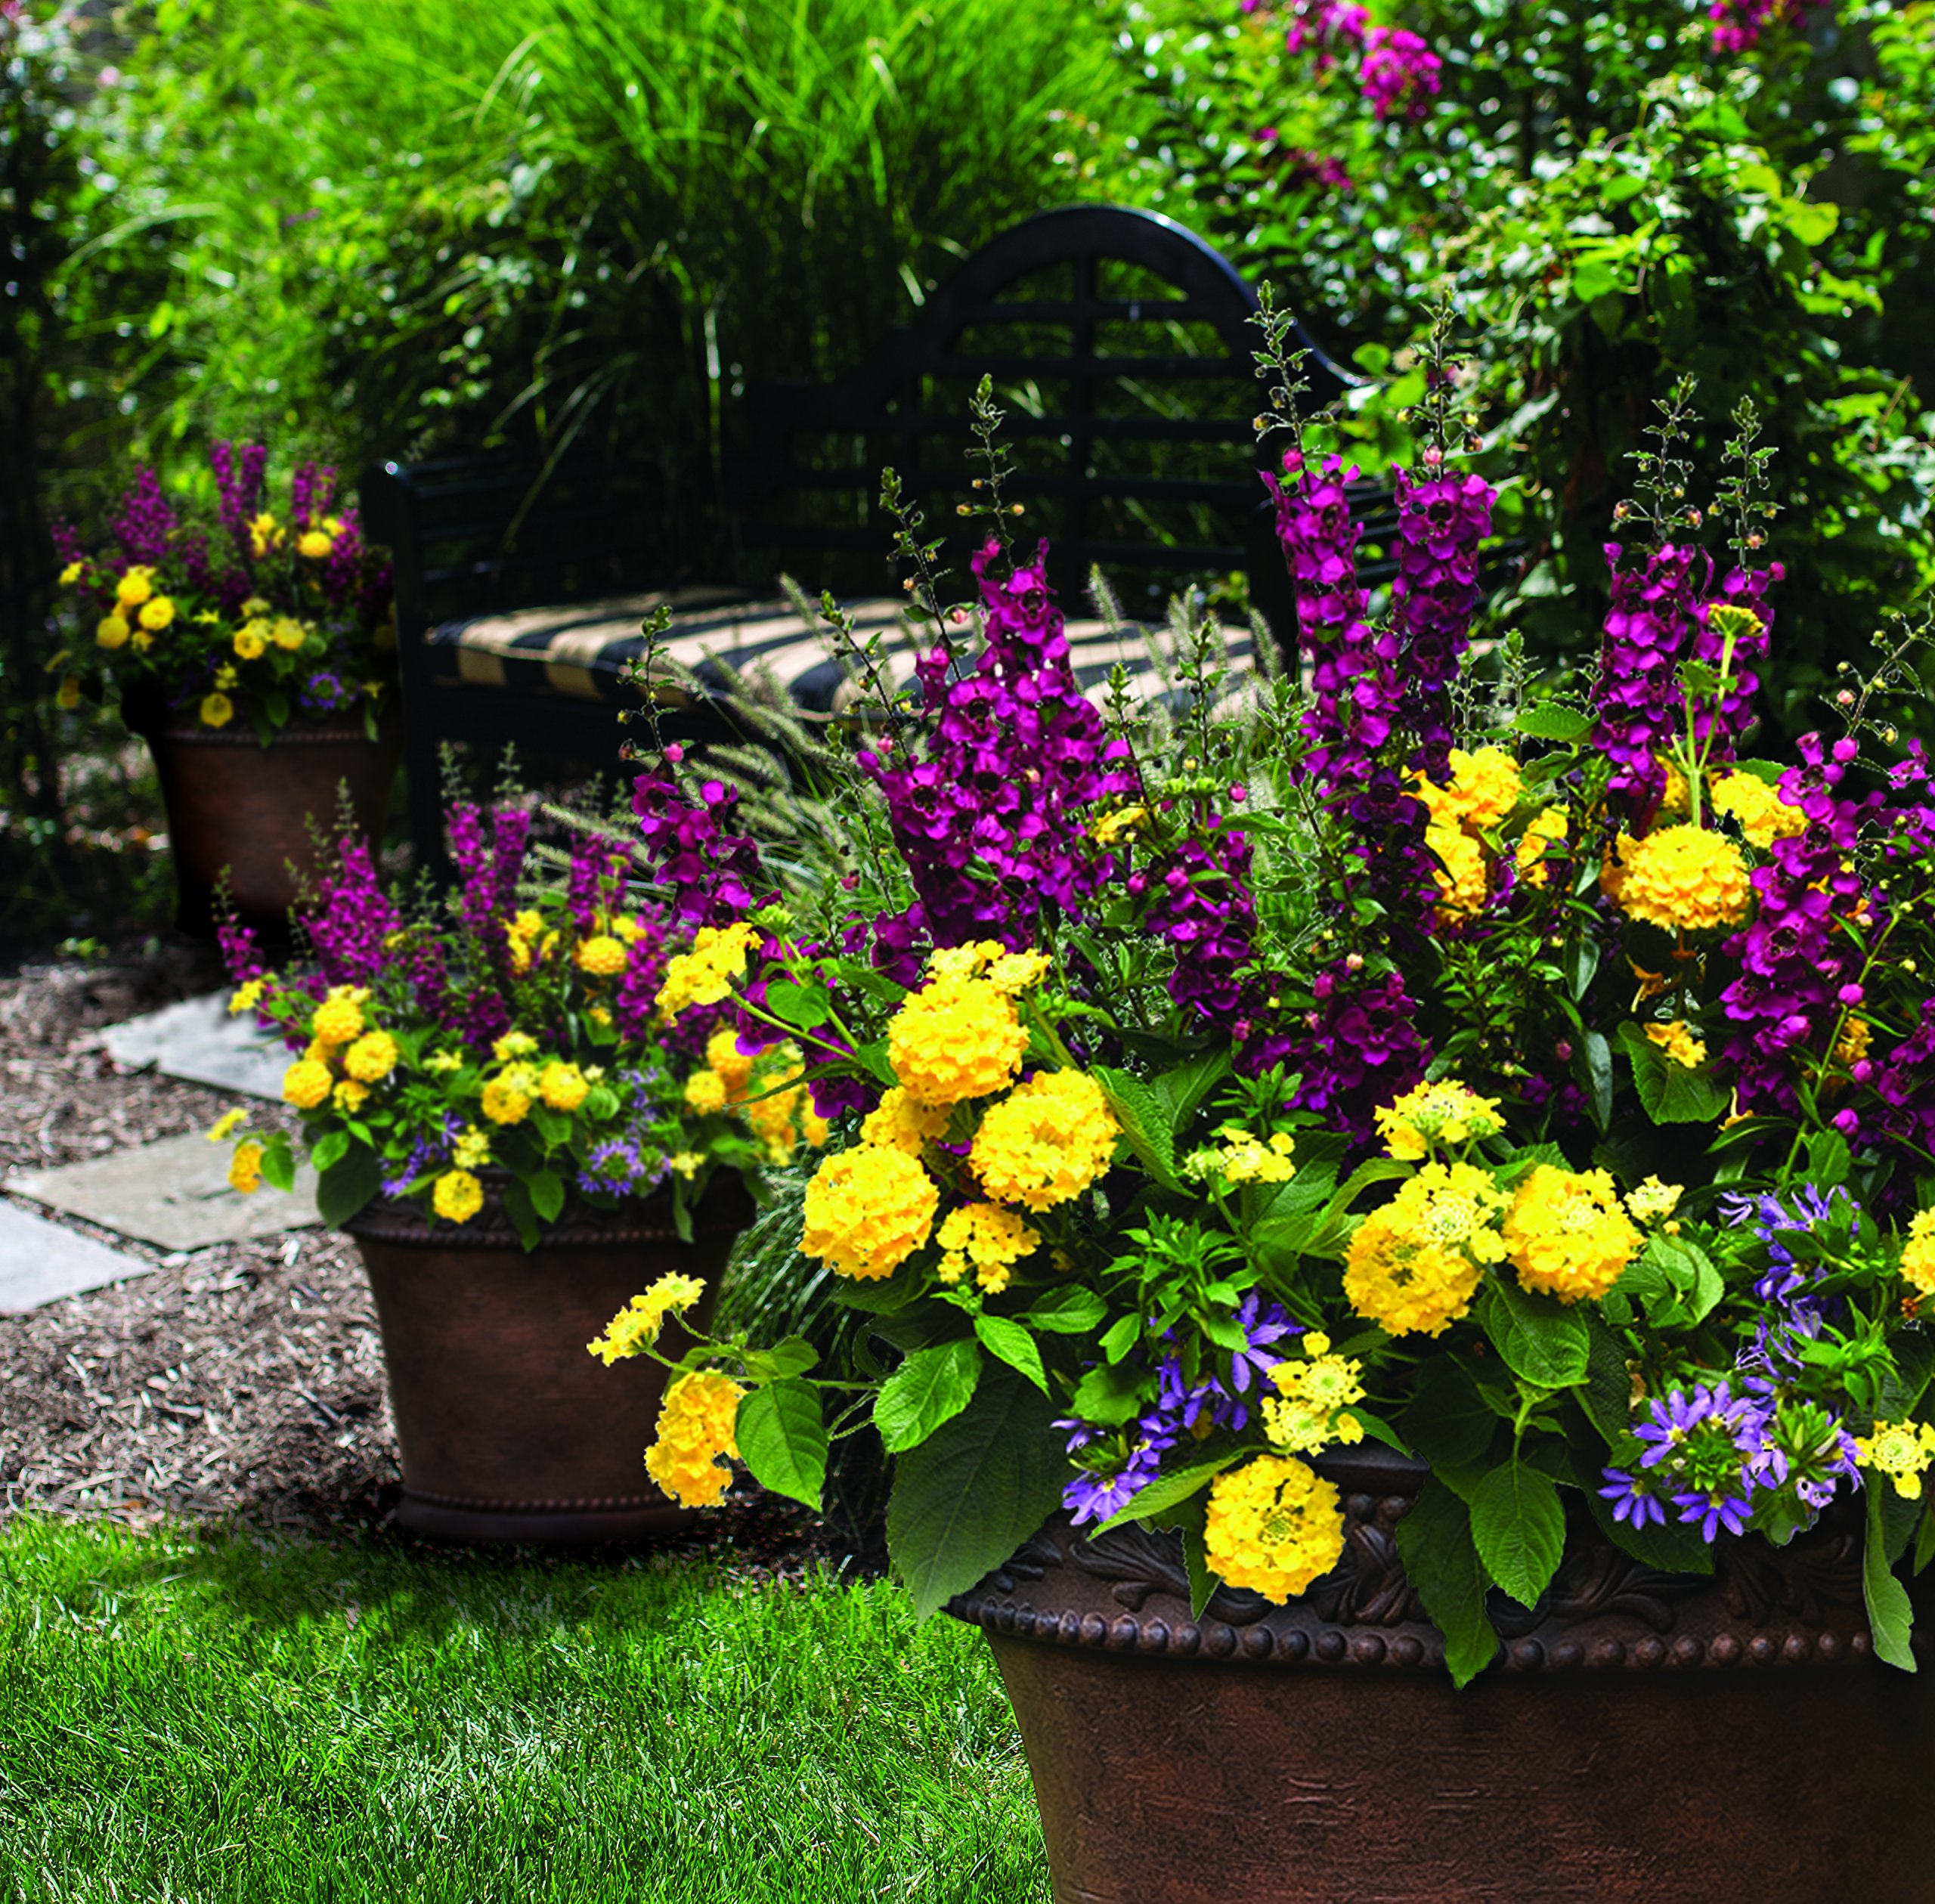 Burpee Combo 'Daydream' - Create Instant Colorful Container Gardens with Four 4 in. pots by Burpee (Image #4)